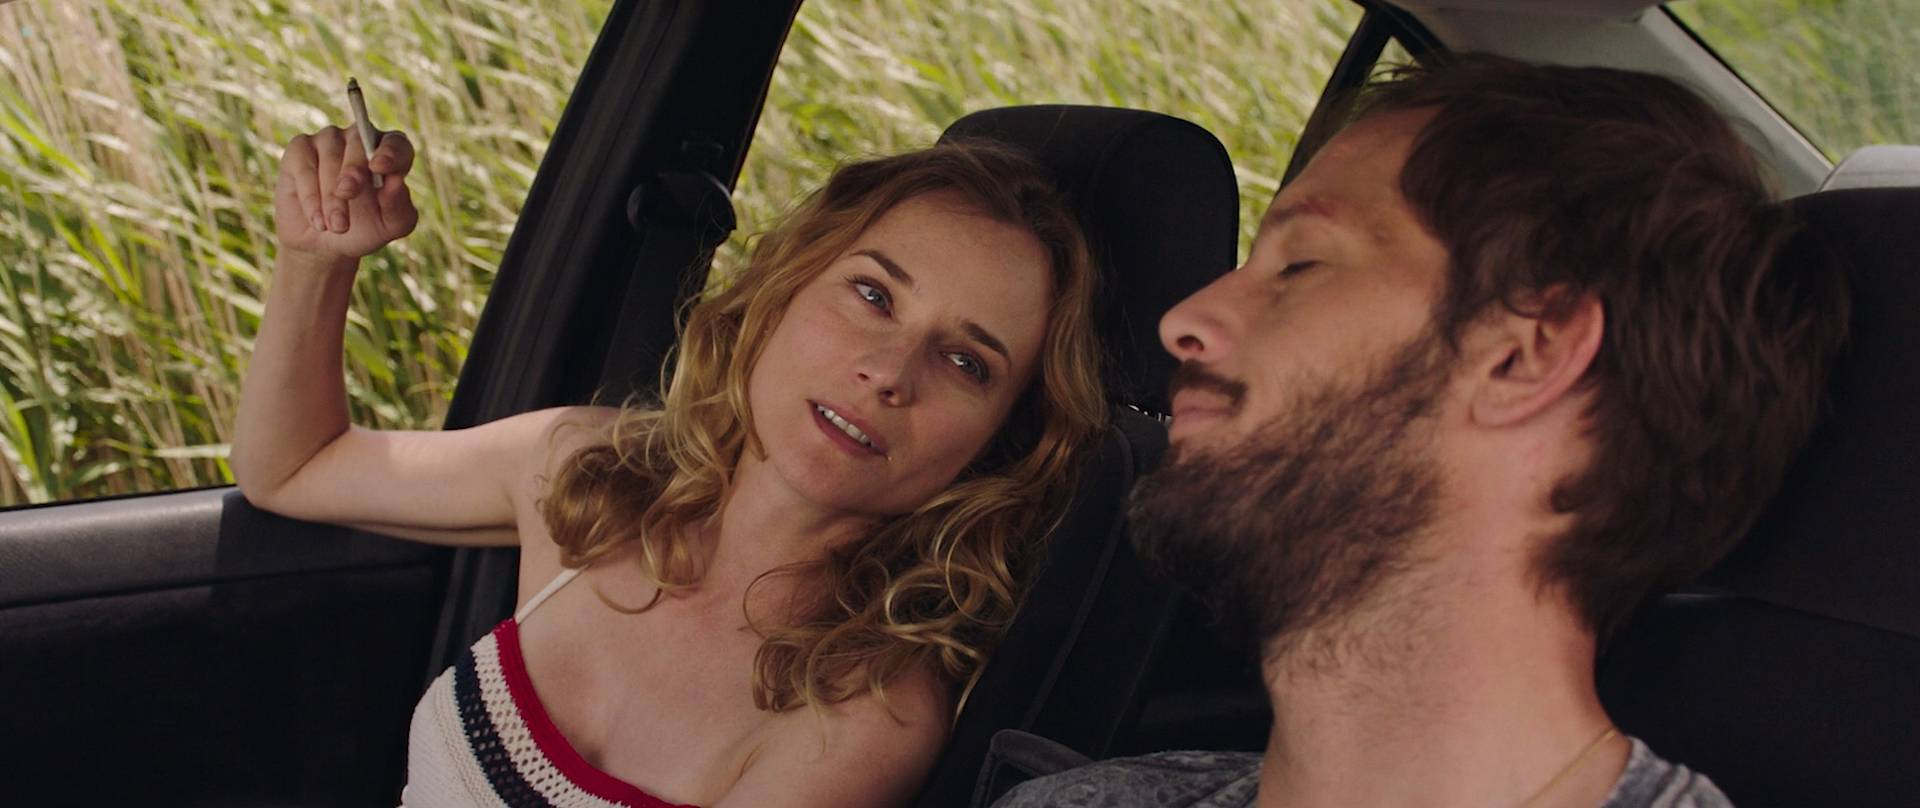 Diane-Kruger-nude-topless-and-sex-in-the-car-Tout-Nous-Separe-FR-2017-HD-1080p-BluRay-004.jpg